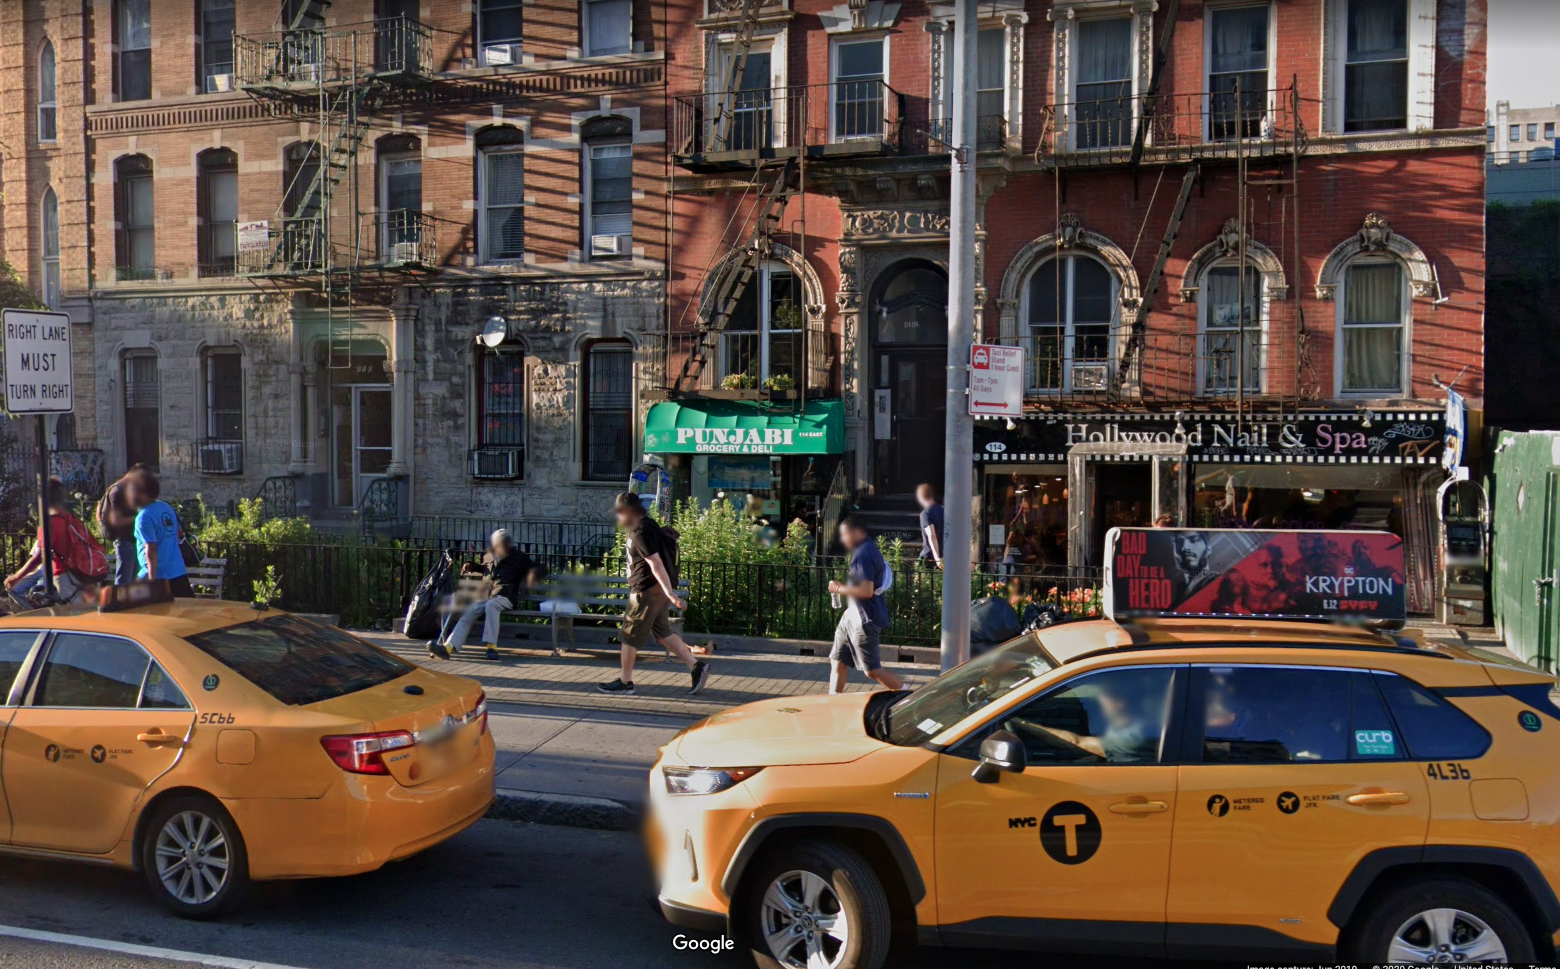 An exterior photo of the deli with a green awning out front and two yellow taxi cabs in the foreground